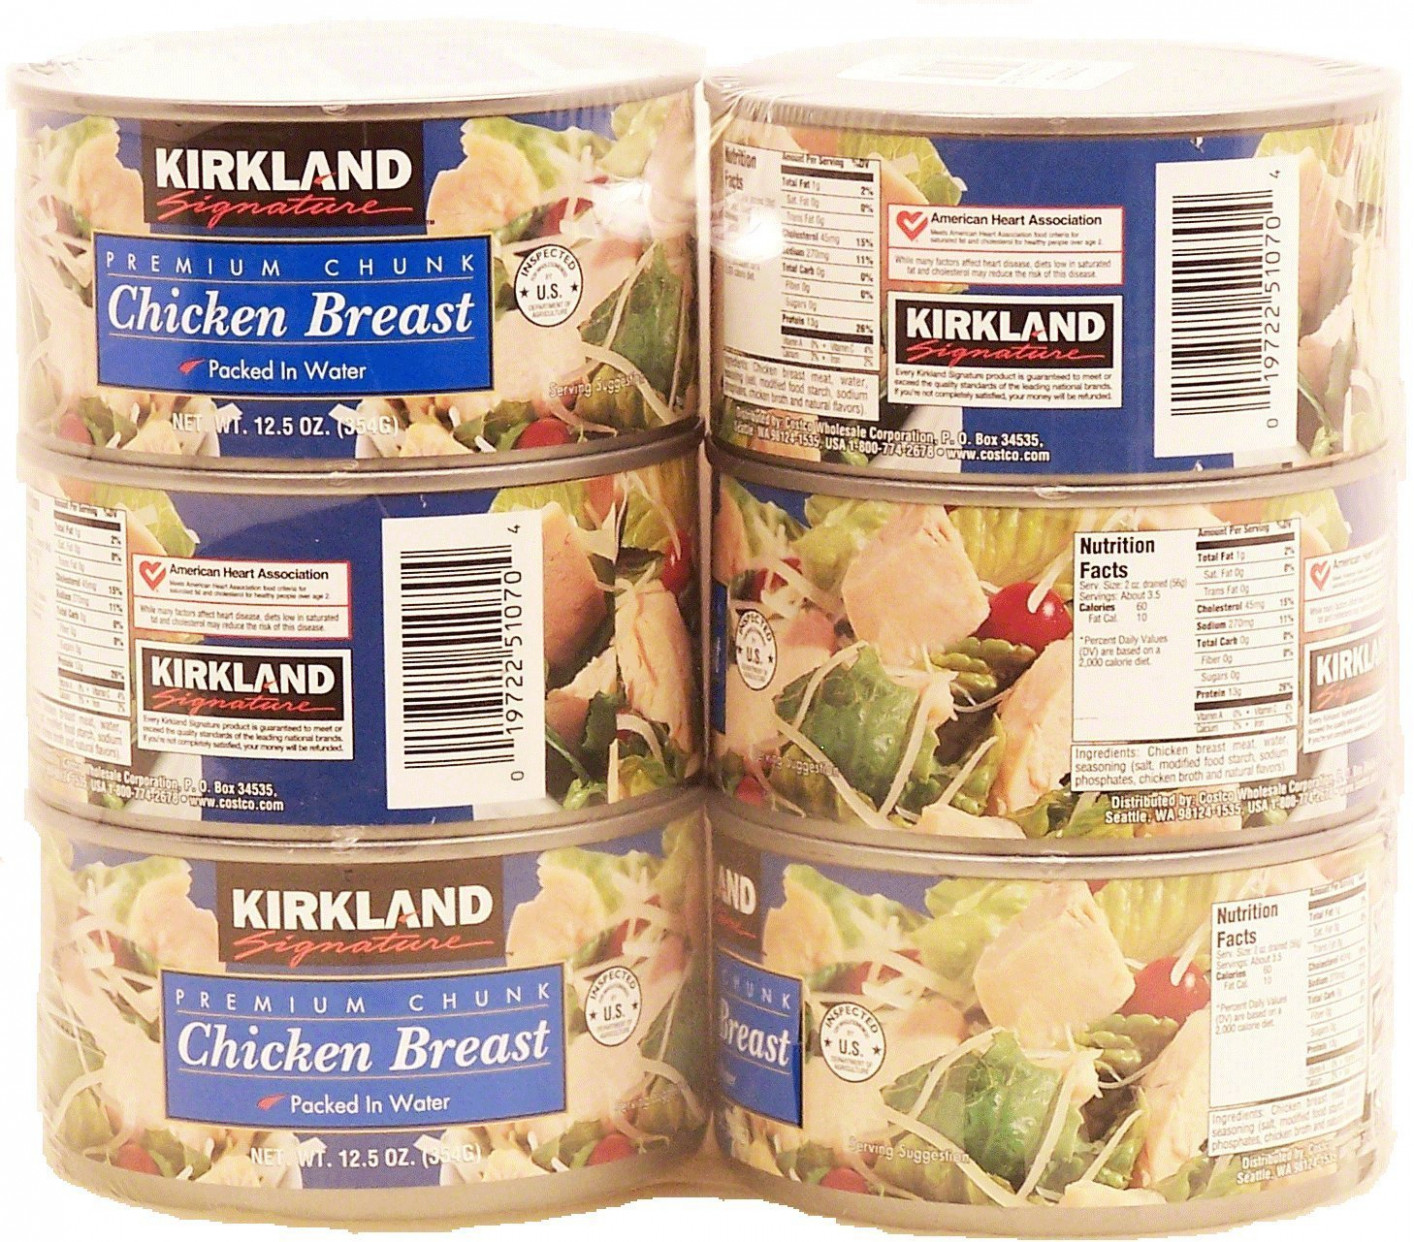 Kirkland Signature Premium Chunk Chicken Breast Packed in Water, 10